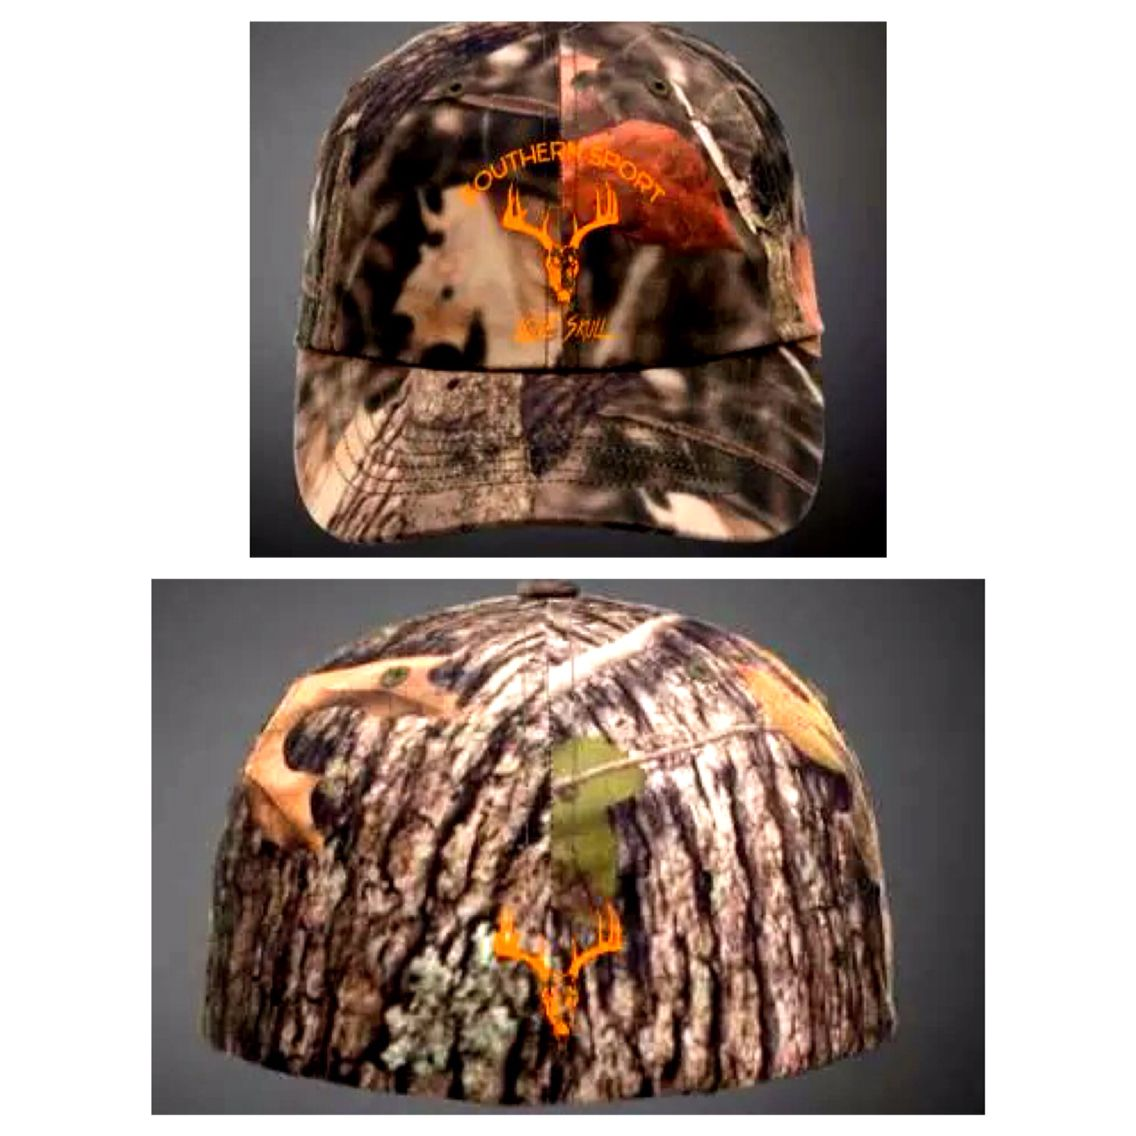 Southern Sport: Lone Skull camo hat #SouthernSport #Camo #LoneSkull #Hunting